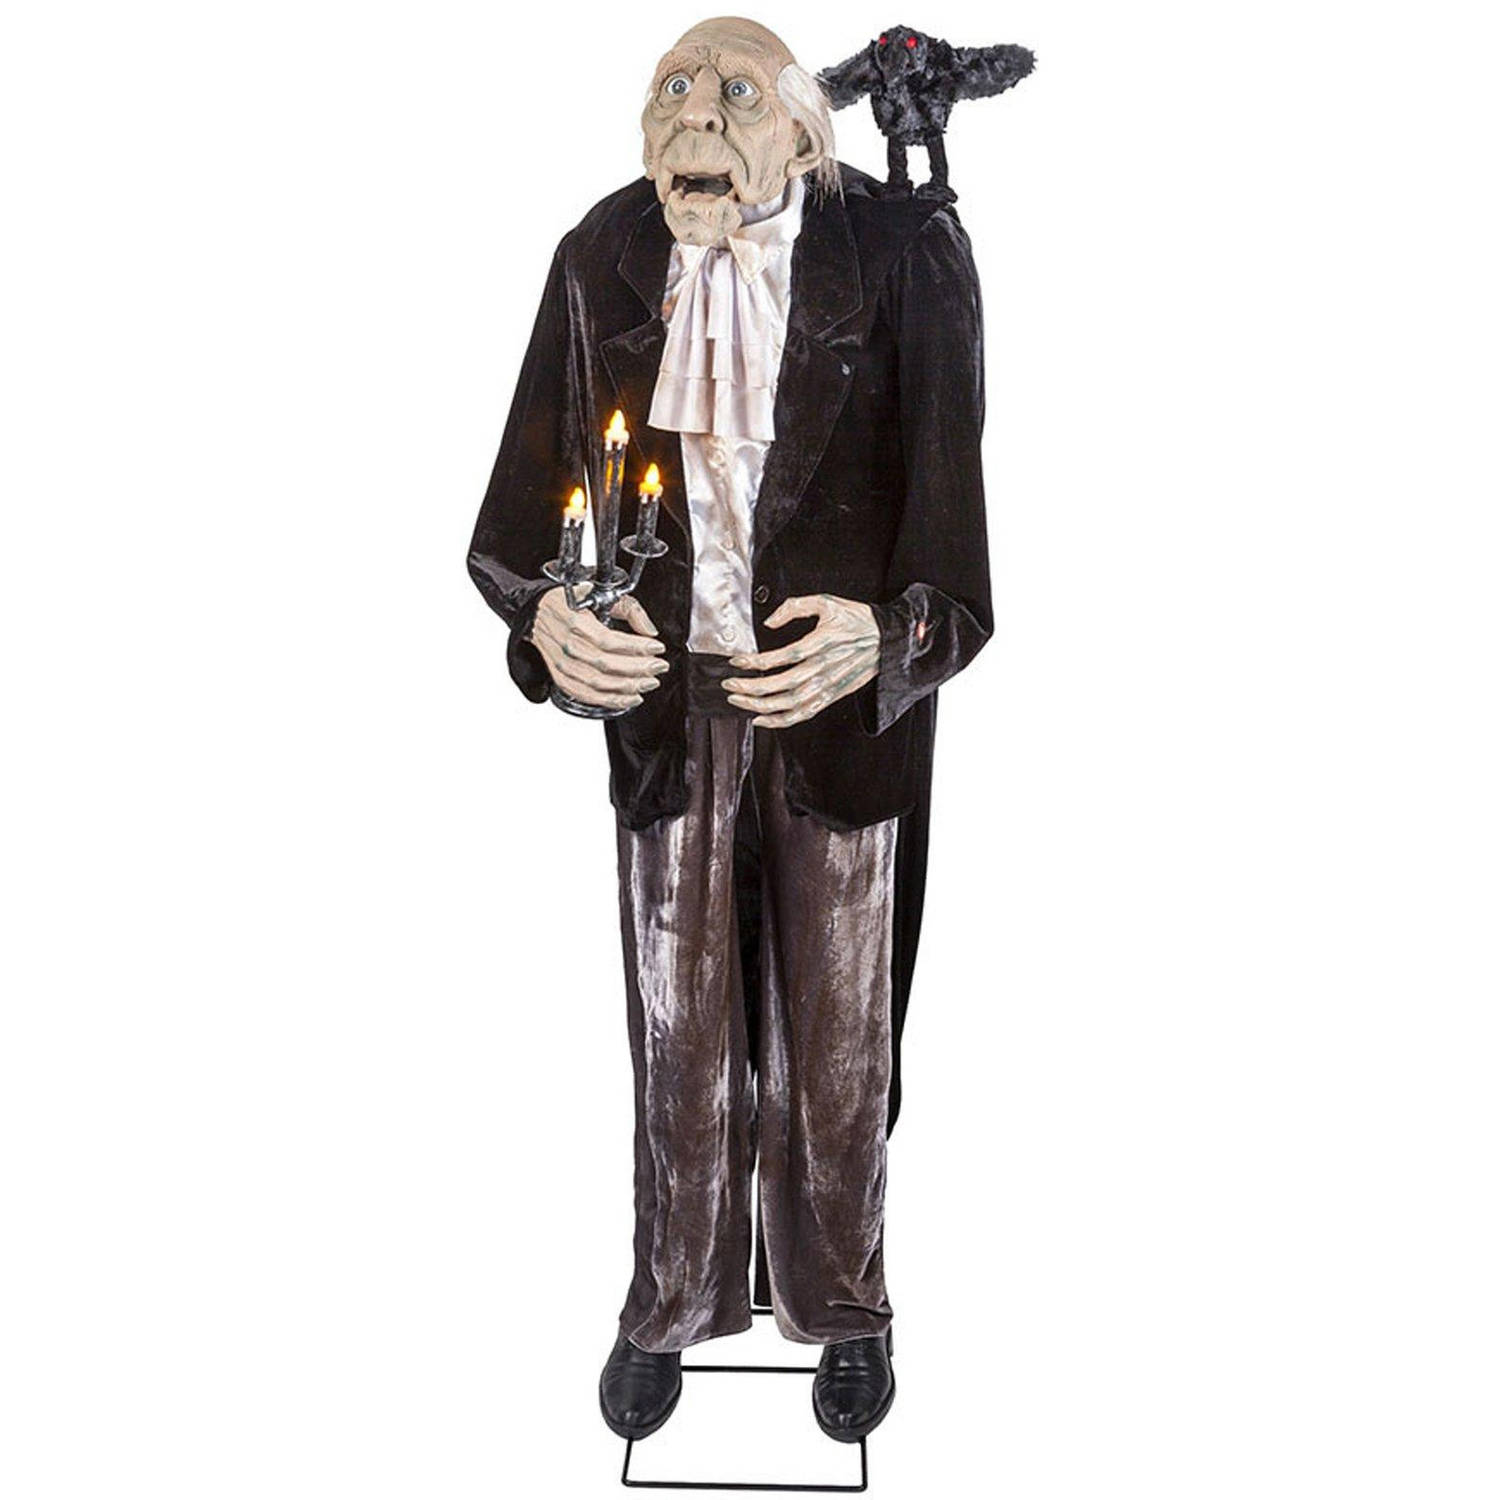 Animated Talking Butler And Crow with Light-Up Candelabra Halloween Decoration